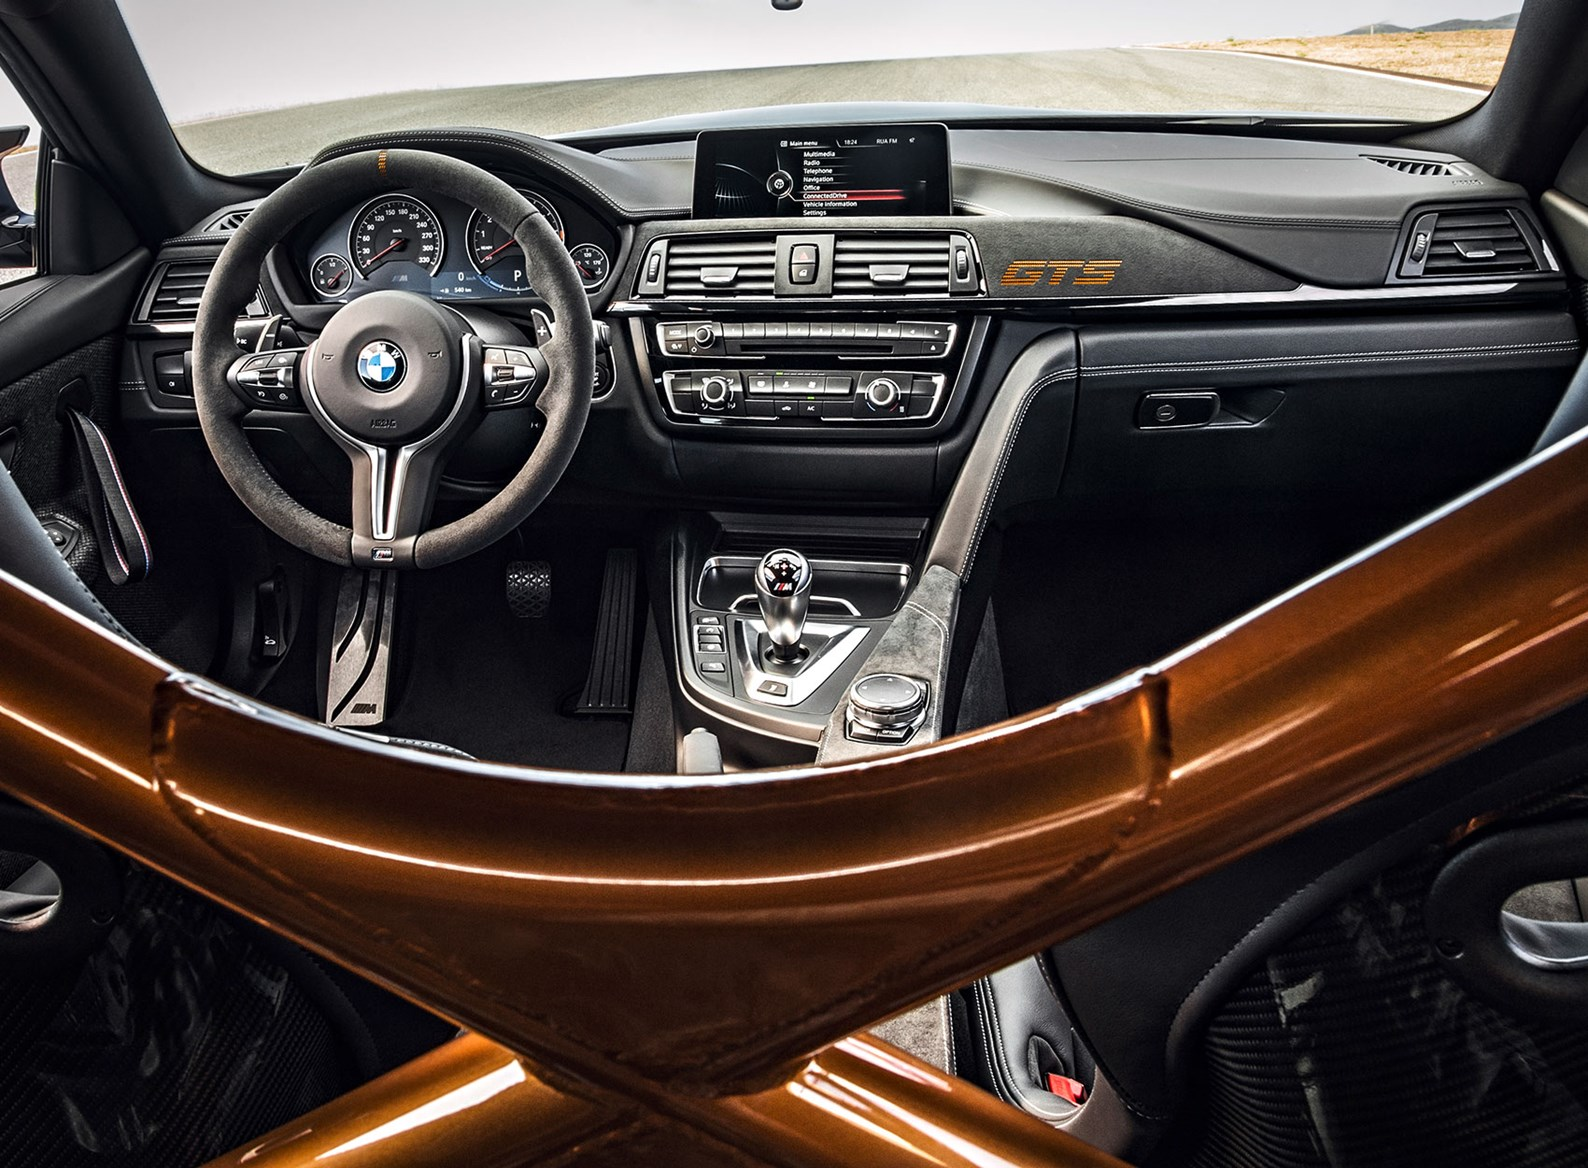 Bmw M4 Price South Africa >> BMW M4 GTS (2016): officially the fastest BMW road car ever by CAR Magazine